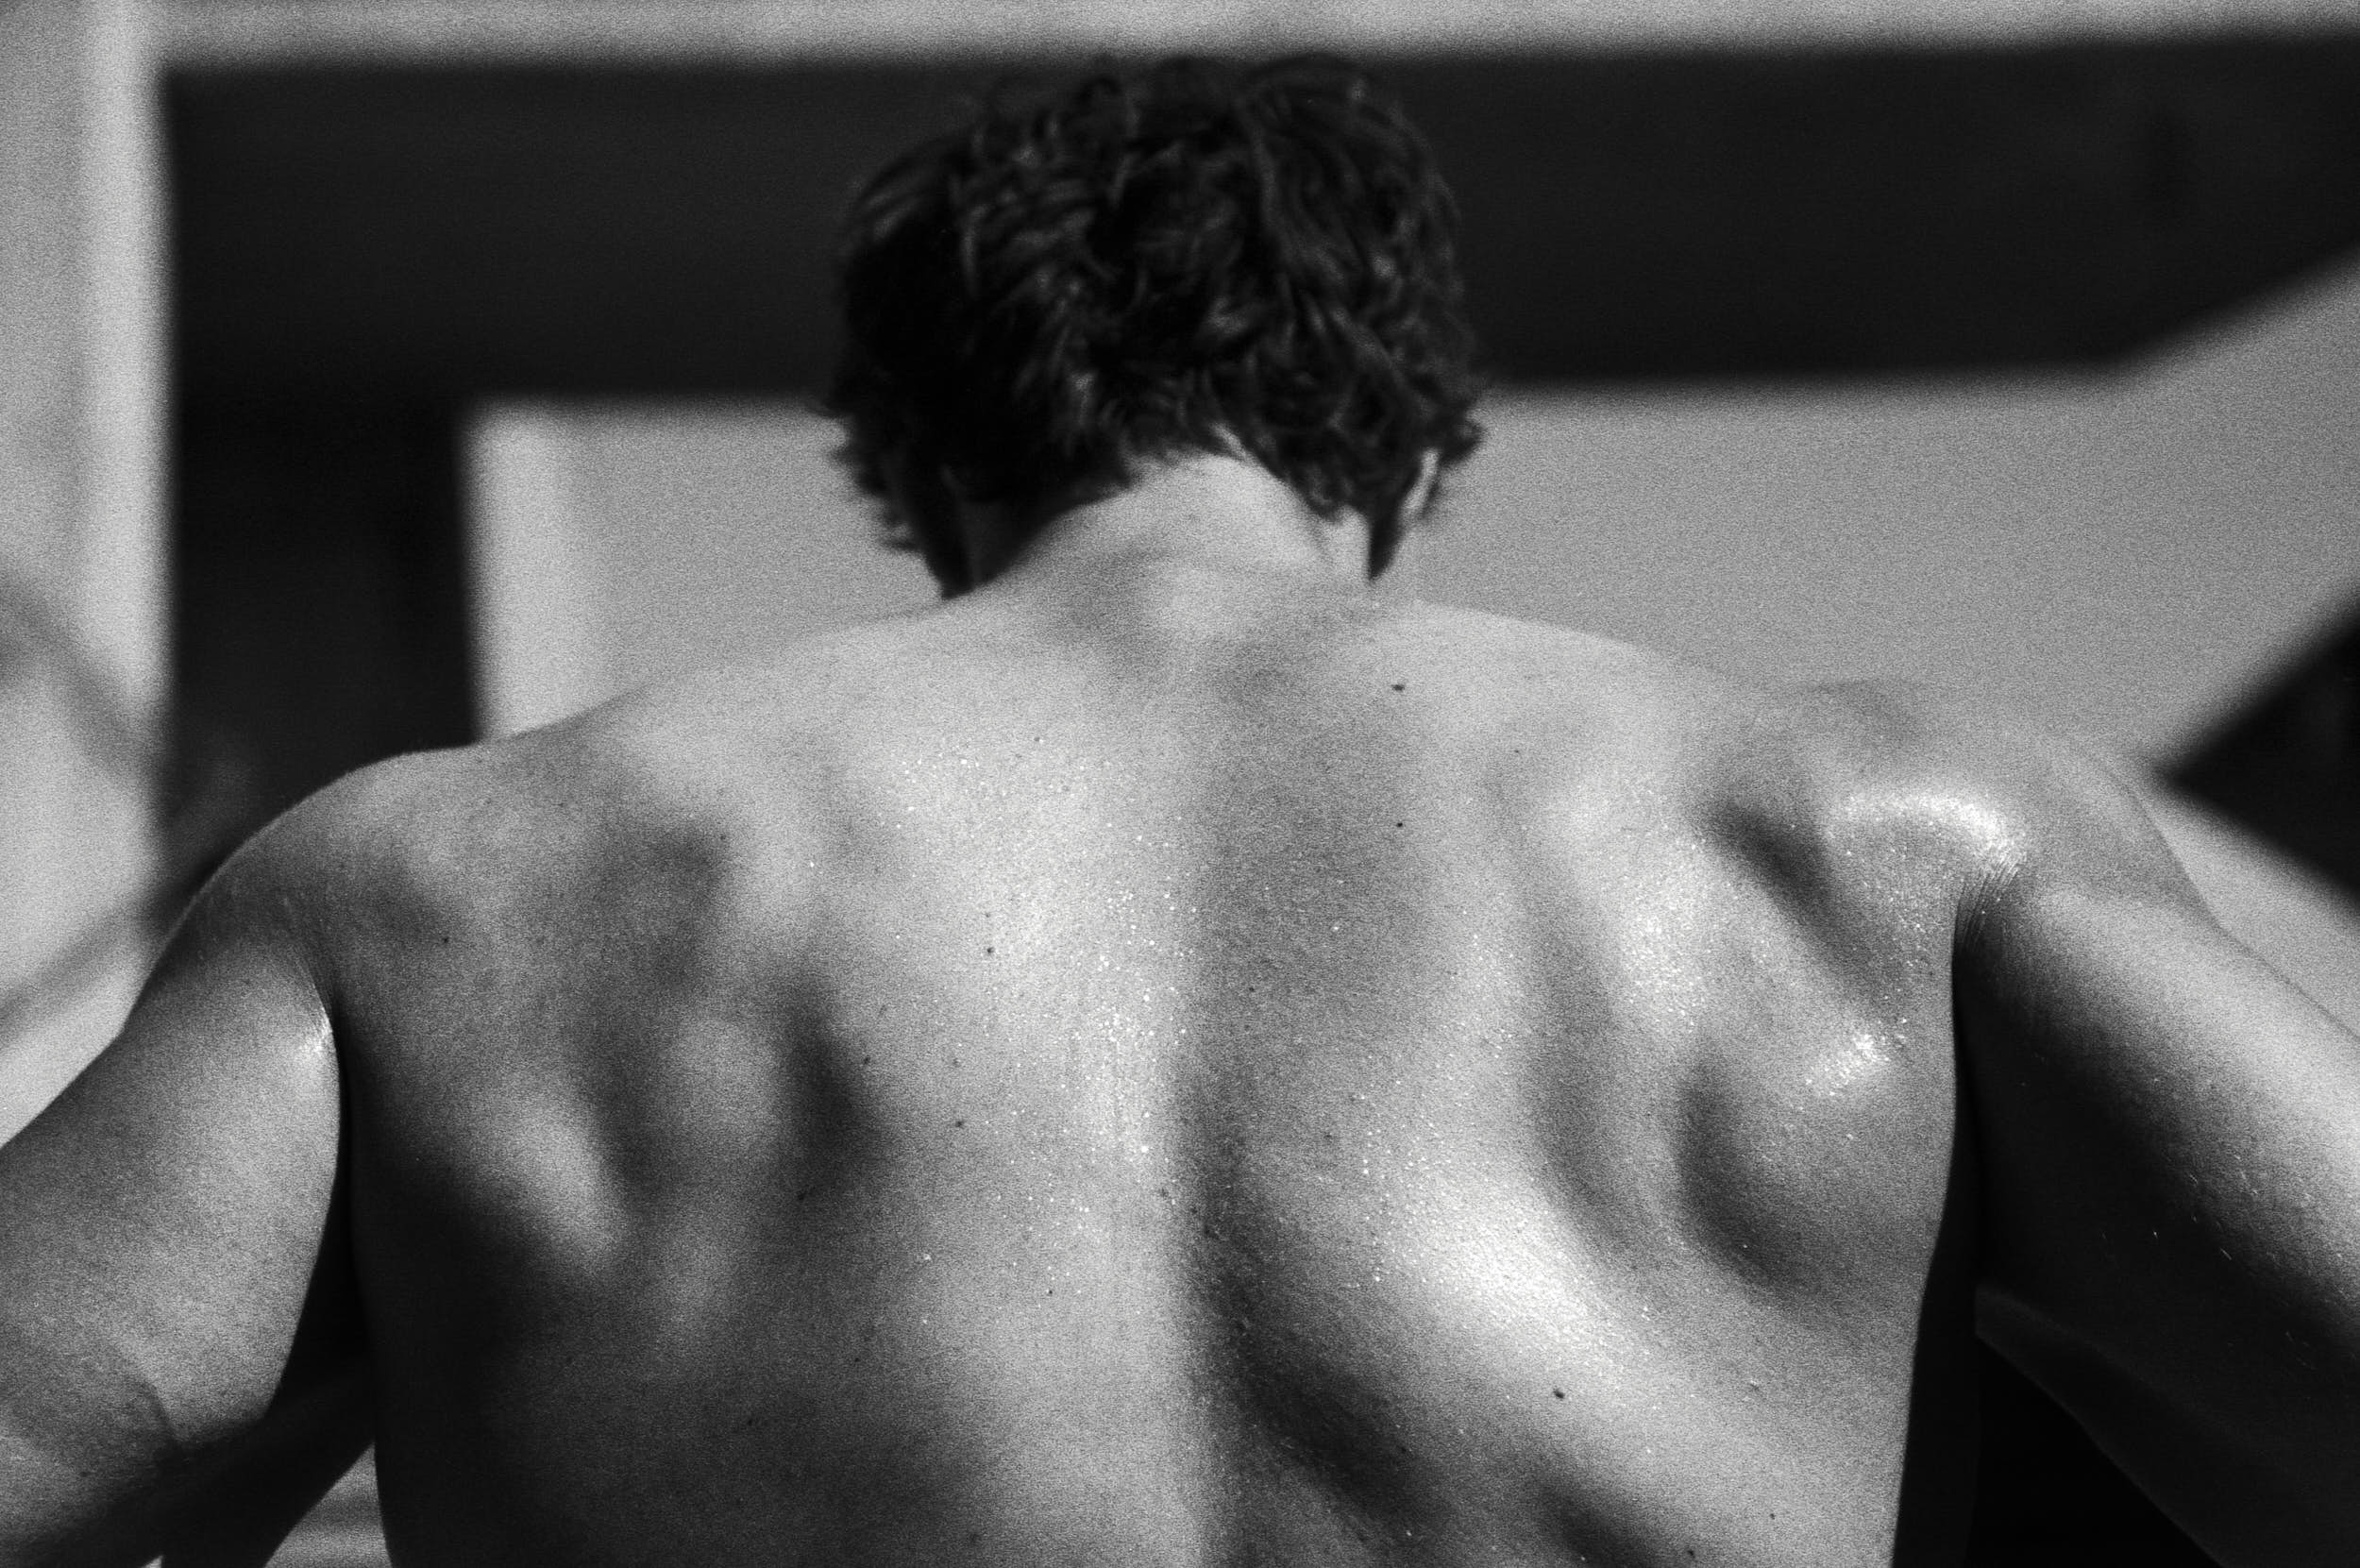 Muscular back of a fitness athlete in a black and white sport advertising photography.